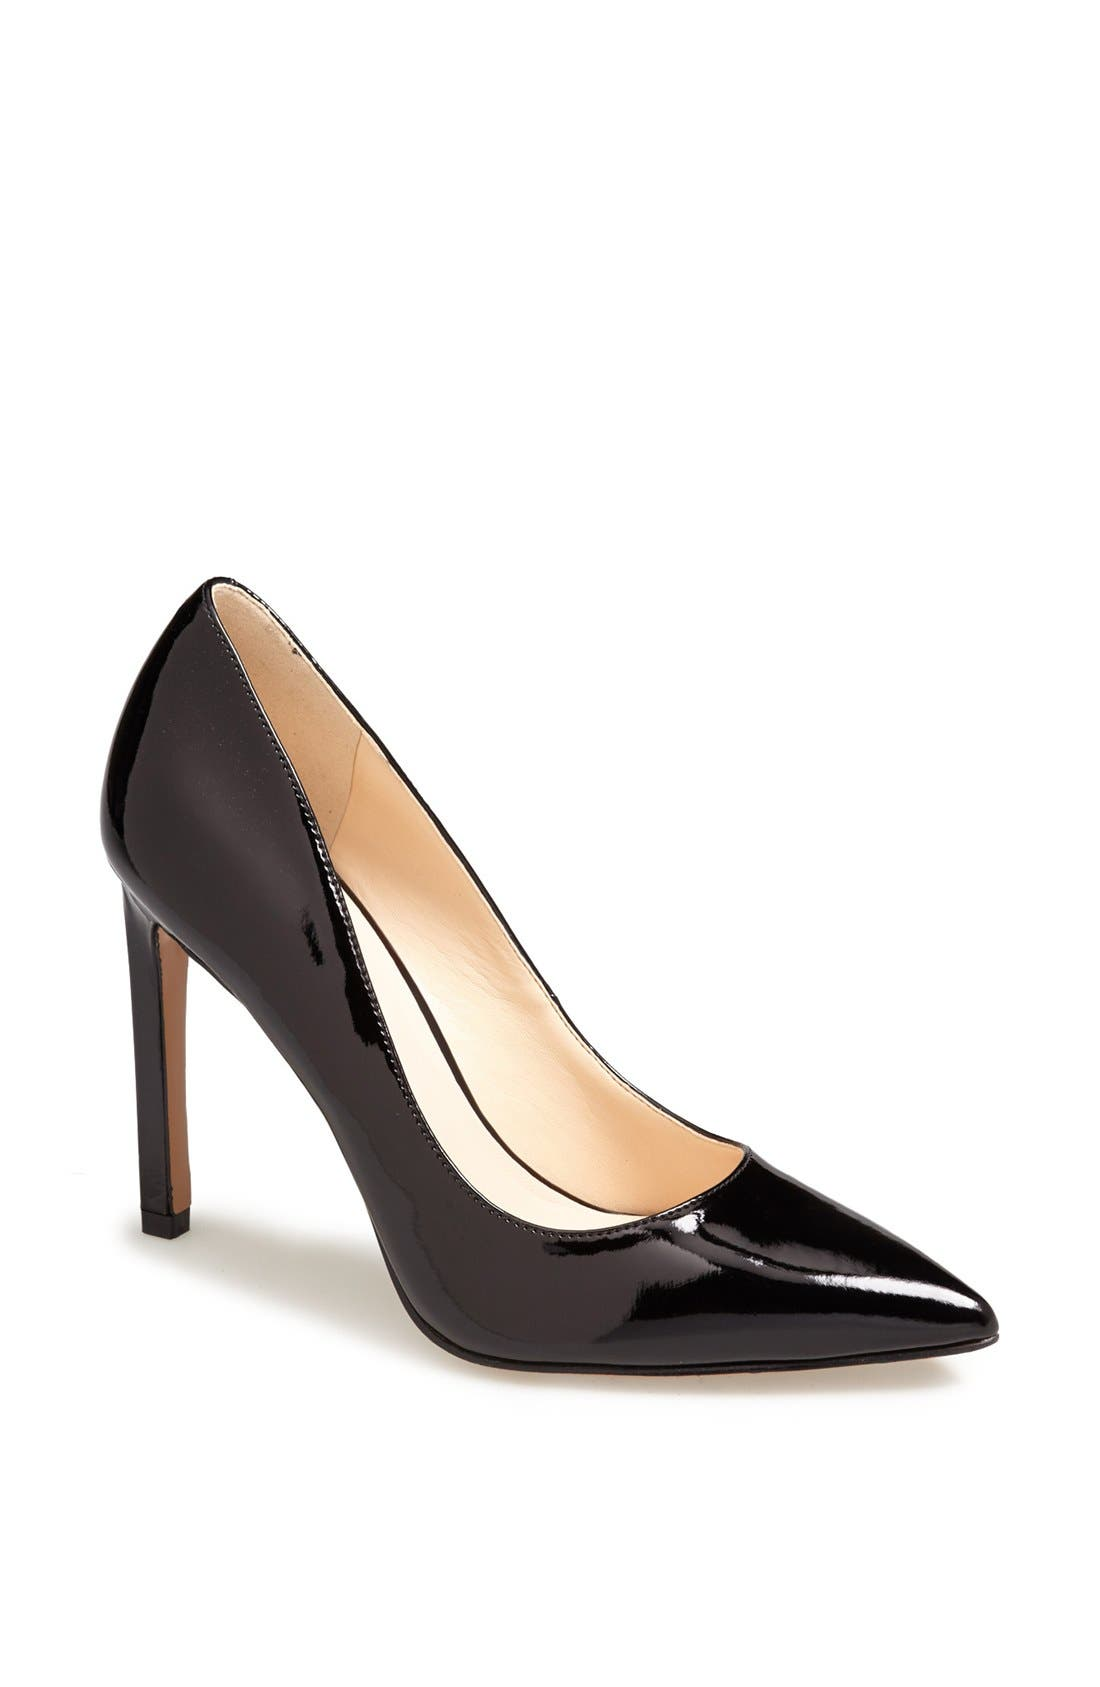 Main Image - Nine West 'Tatiana' Pump